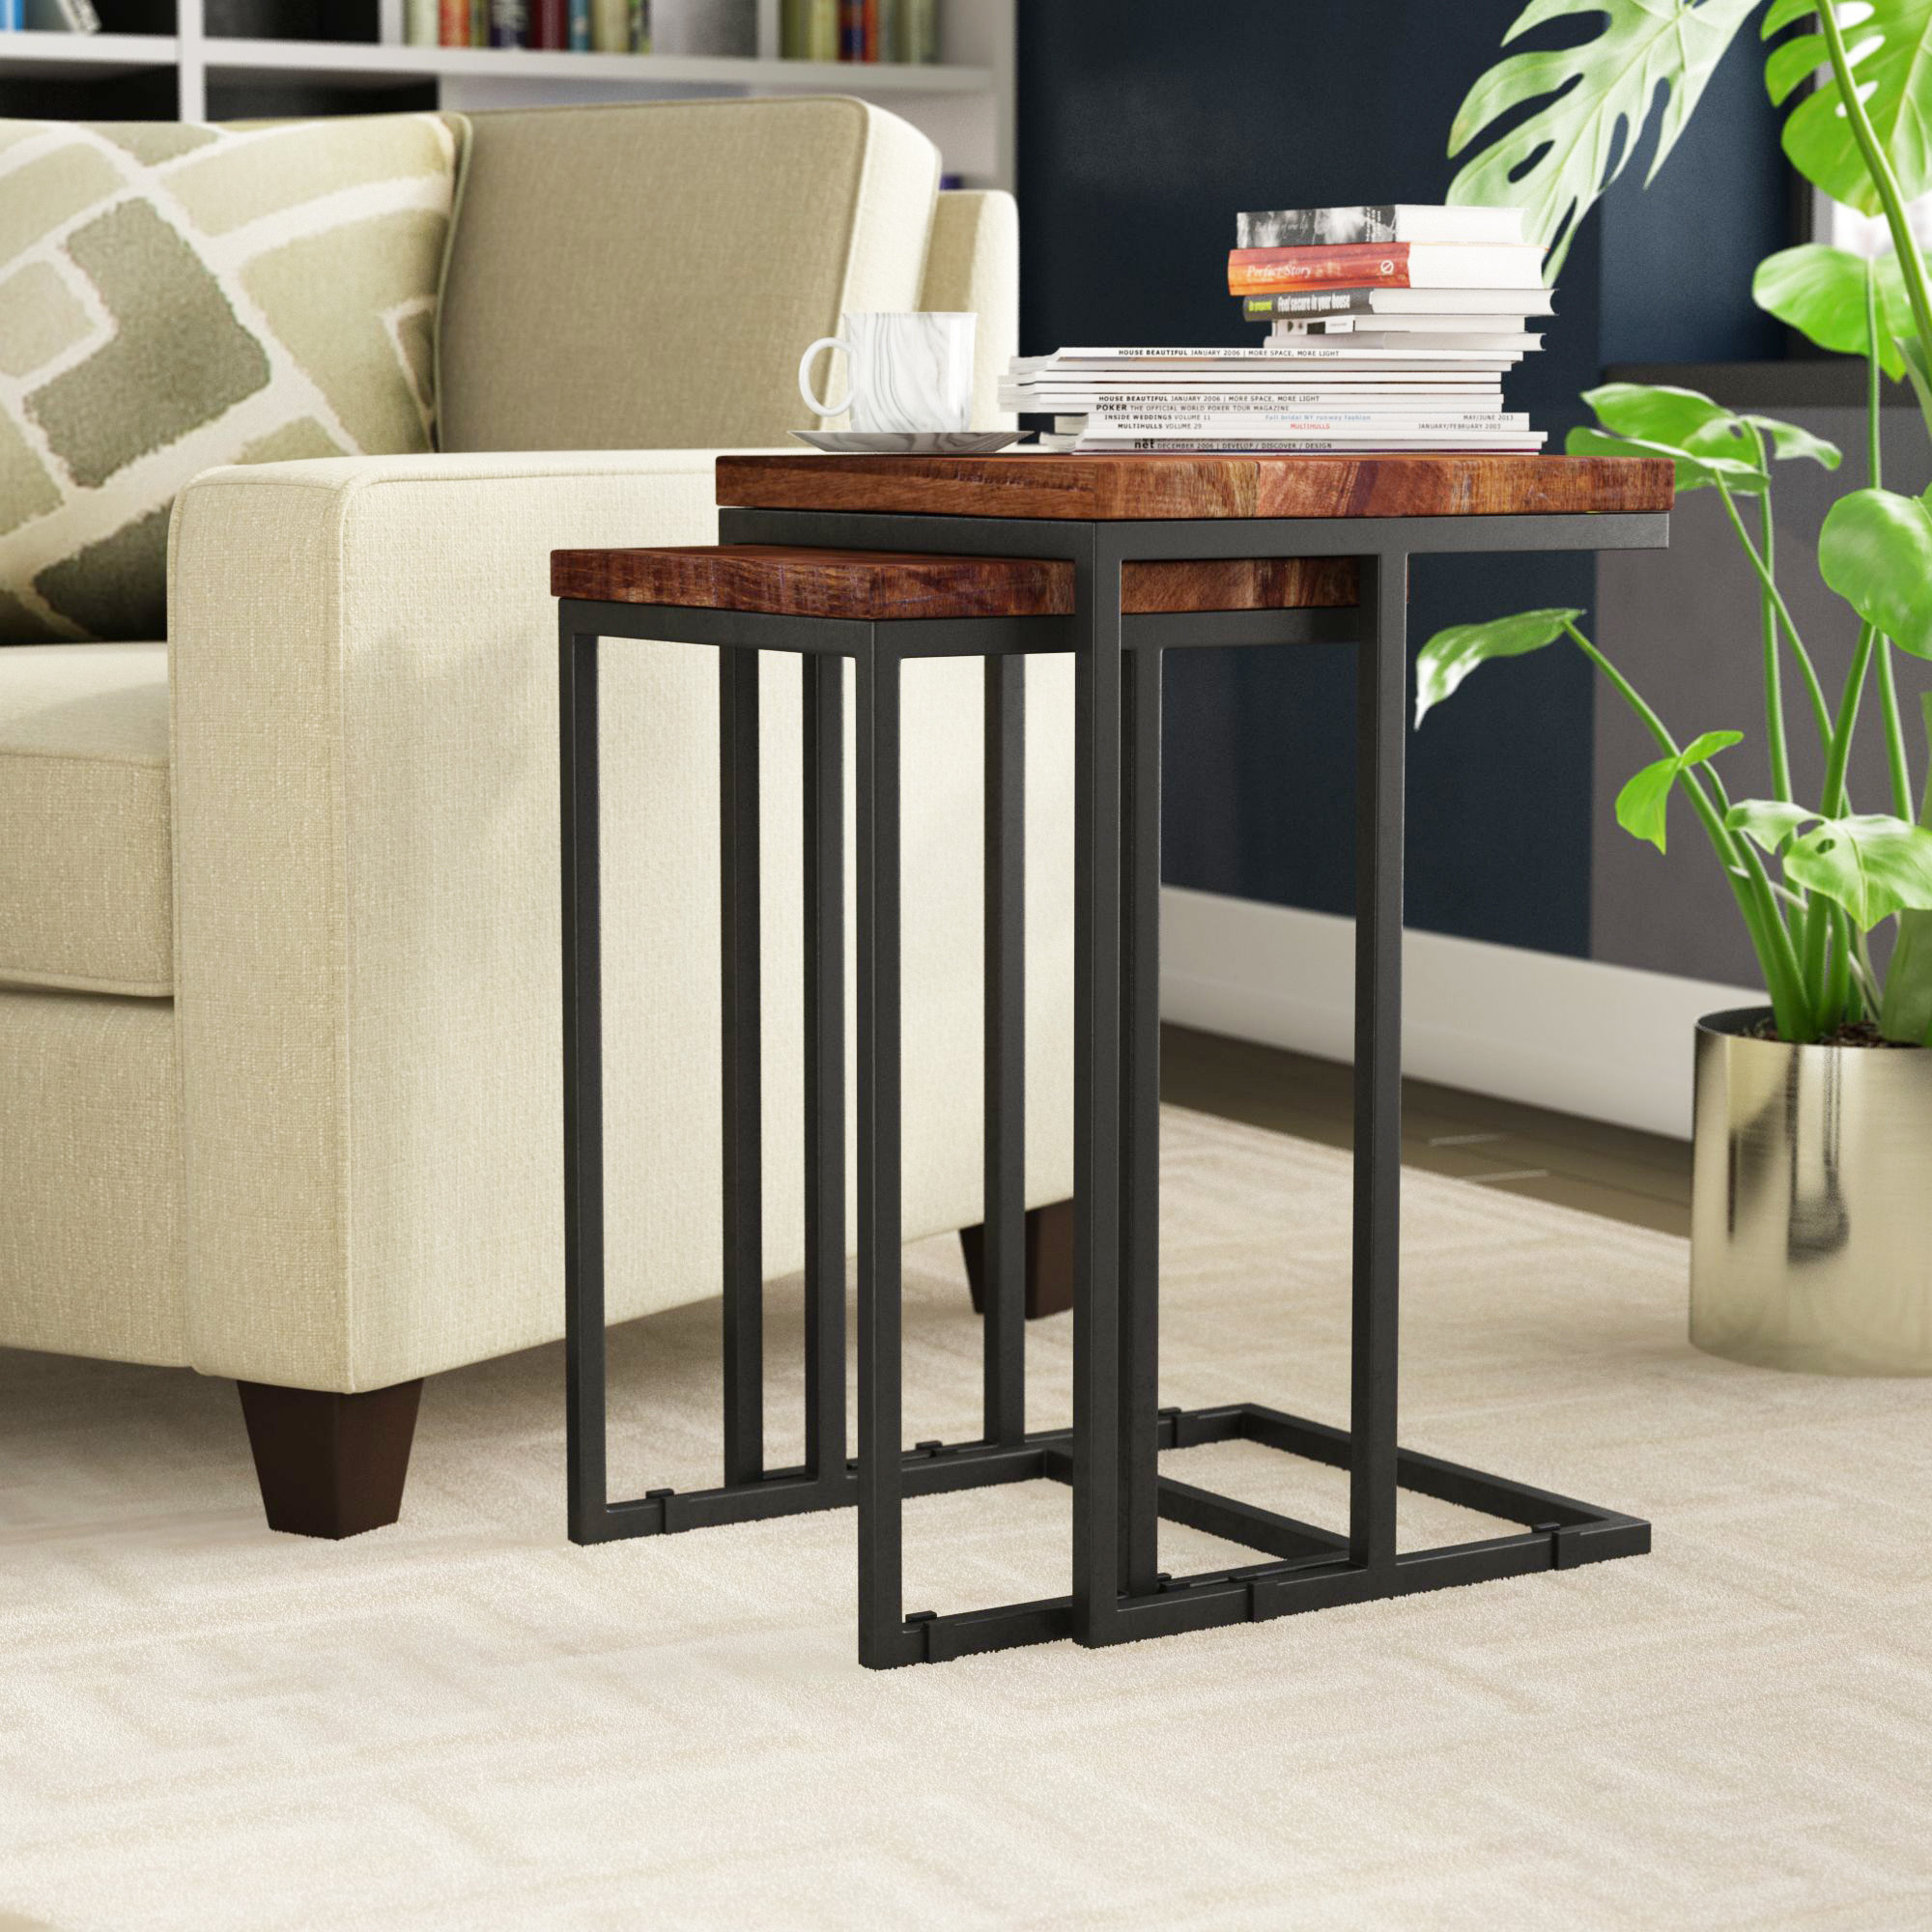 C Tables You'll Love | Wayfair intended for Mix Leather Imprint Metal Frame Console Tables (Image 2 of 30)